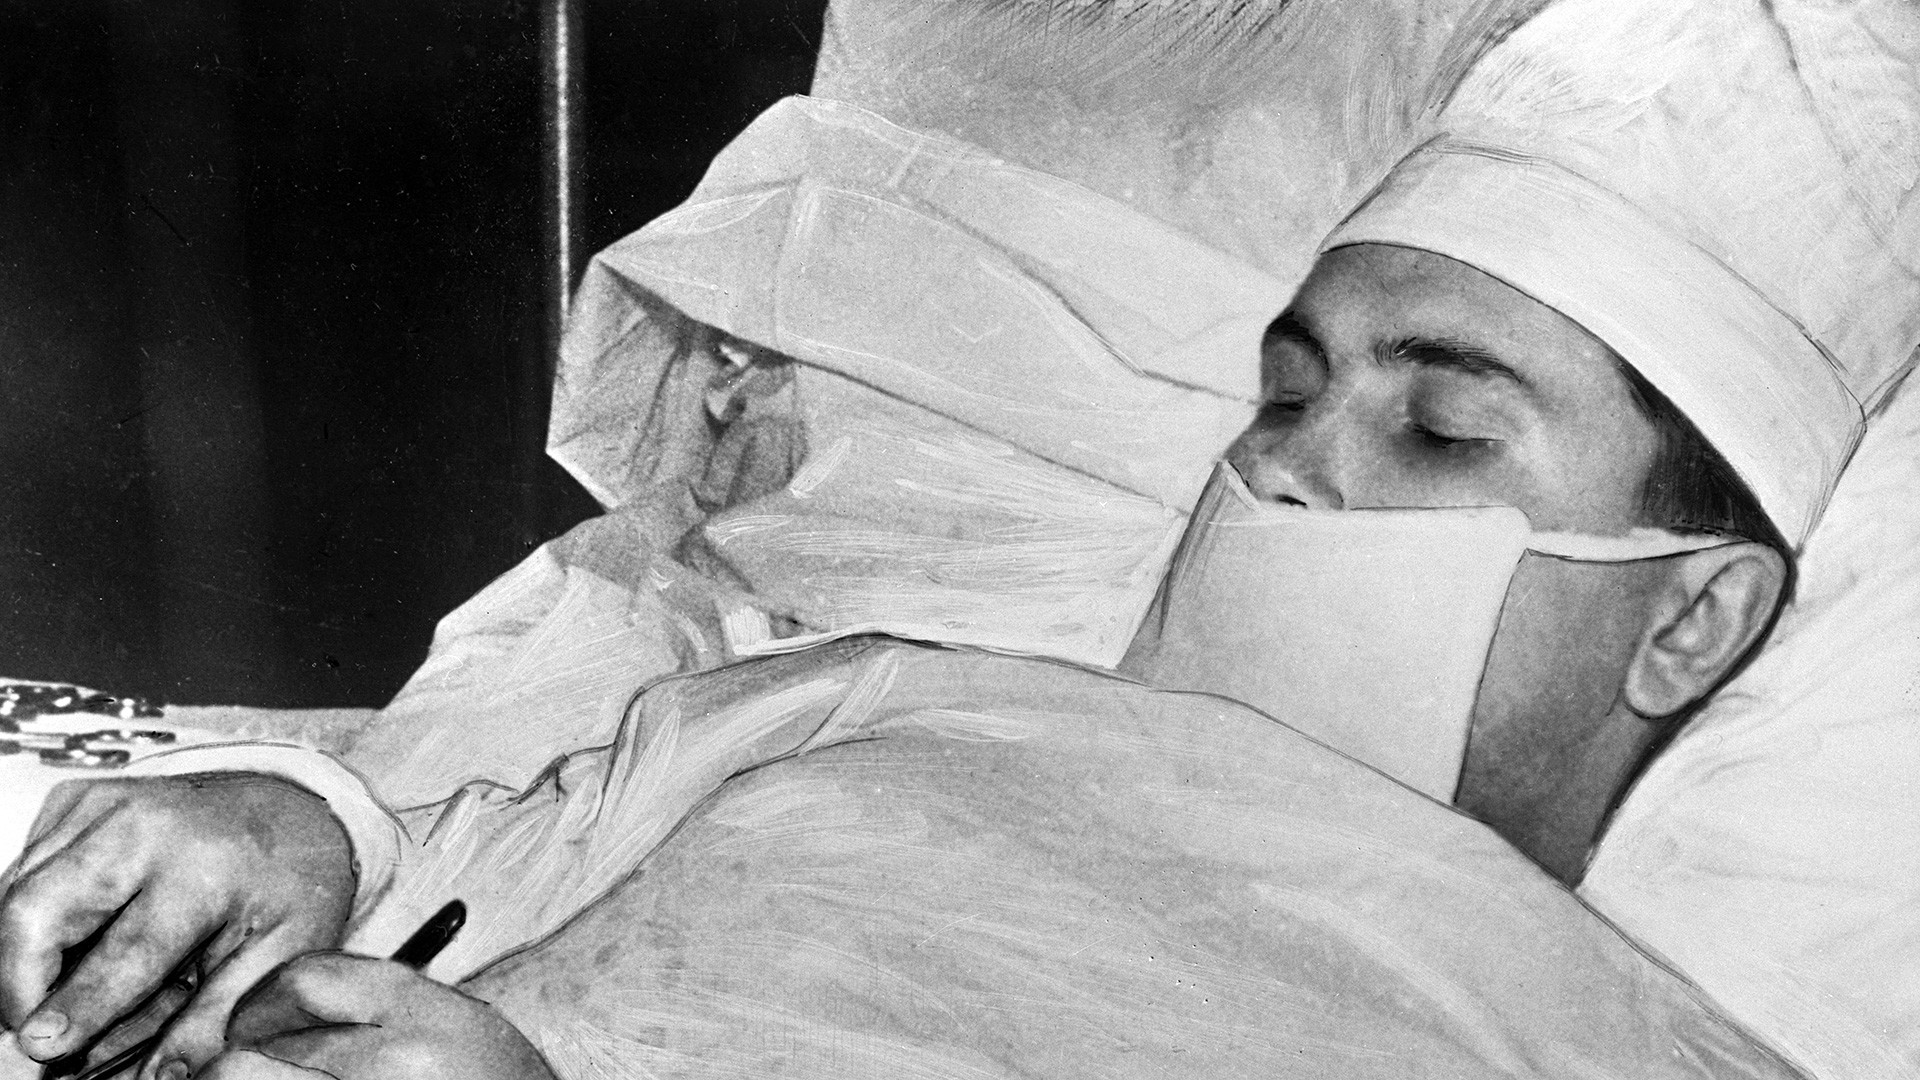 How A Soviet Doctor Cut Out His Own Appendix In The Antarctic